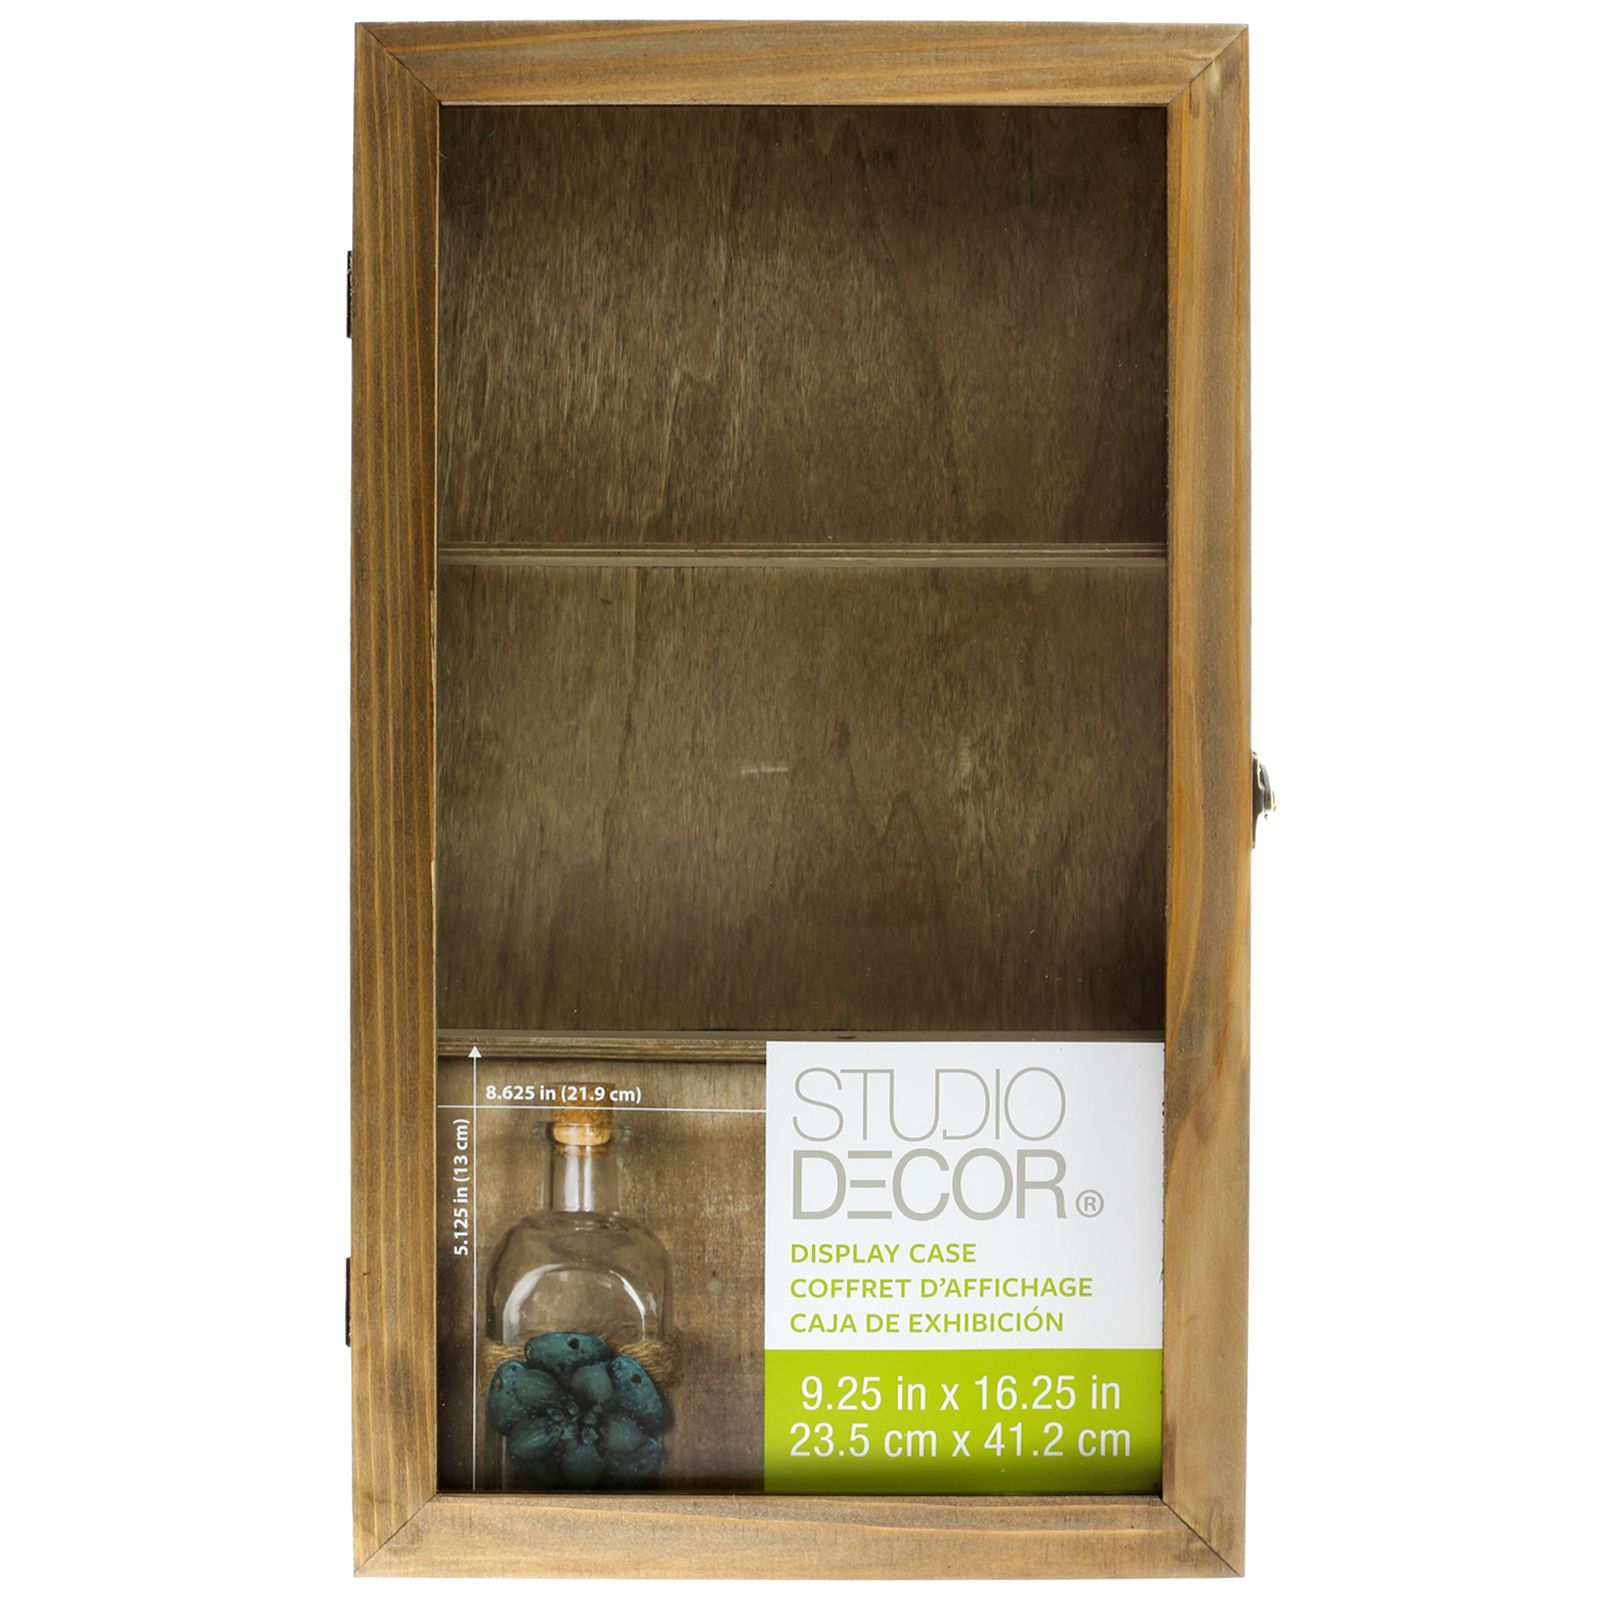 For The Rustic Display Case By Studio Decor At Michaels